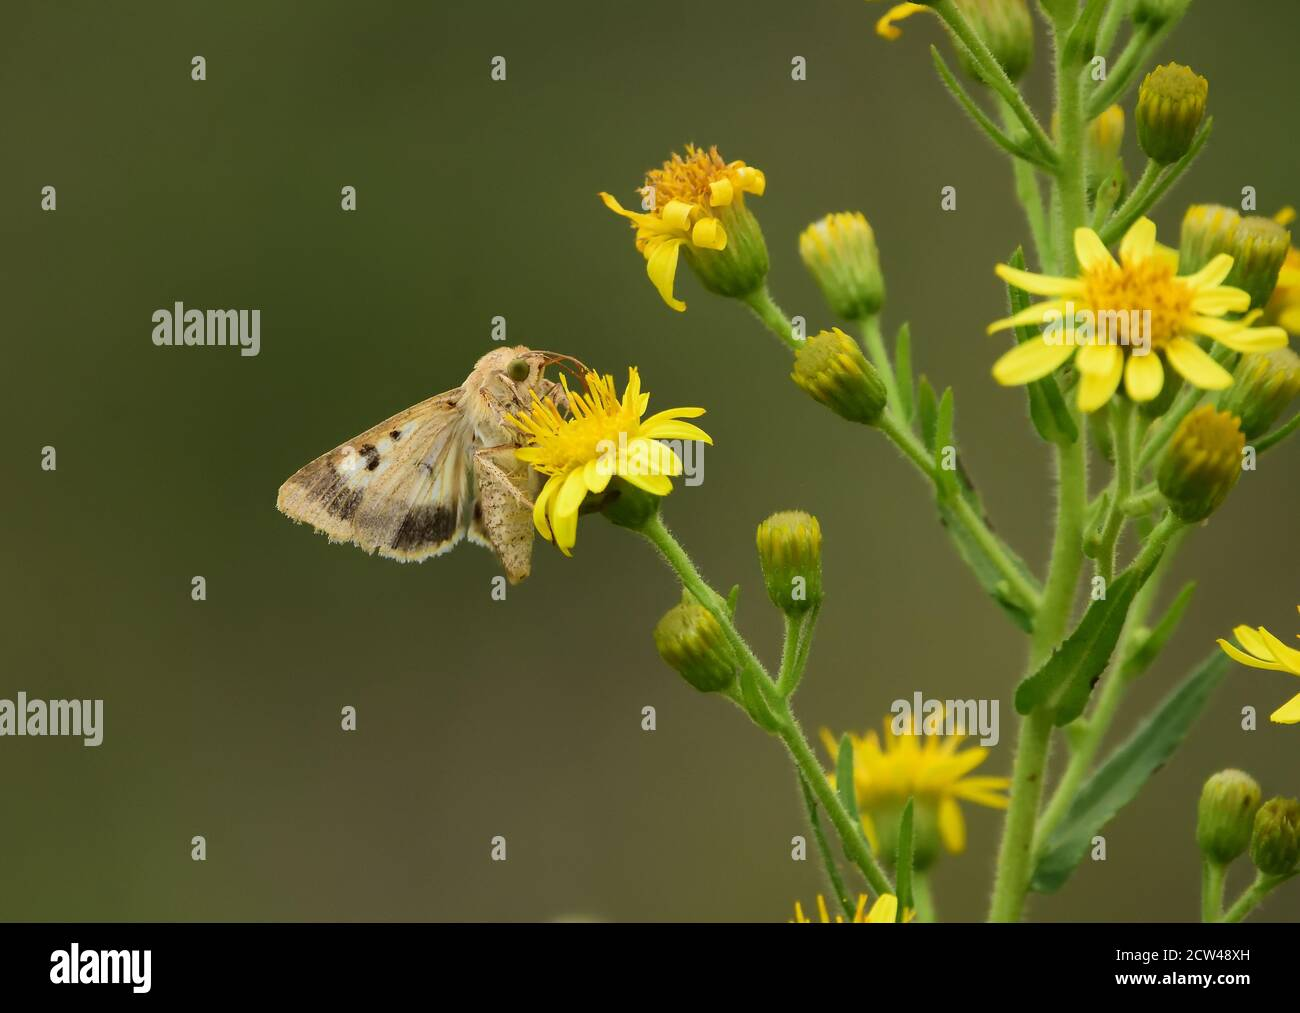 Isolated butterfly of the species Cotton bollworm, corn earworm (Helicoverpa armigera) or Old World (African) bollworm, on wild yellow flowers. Stock Photo